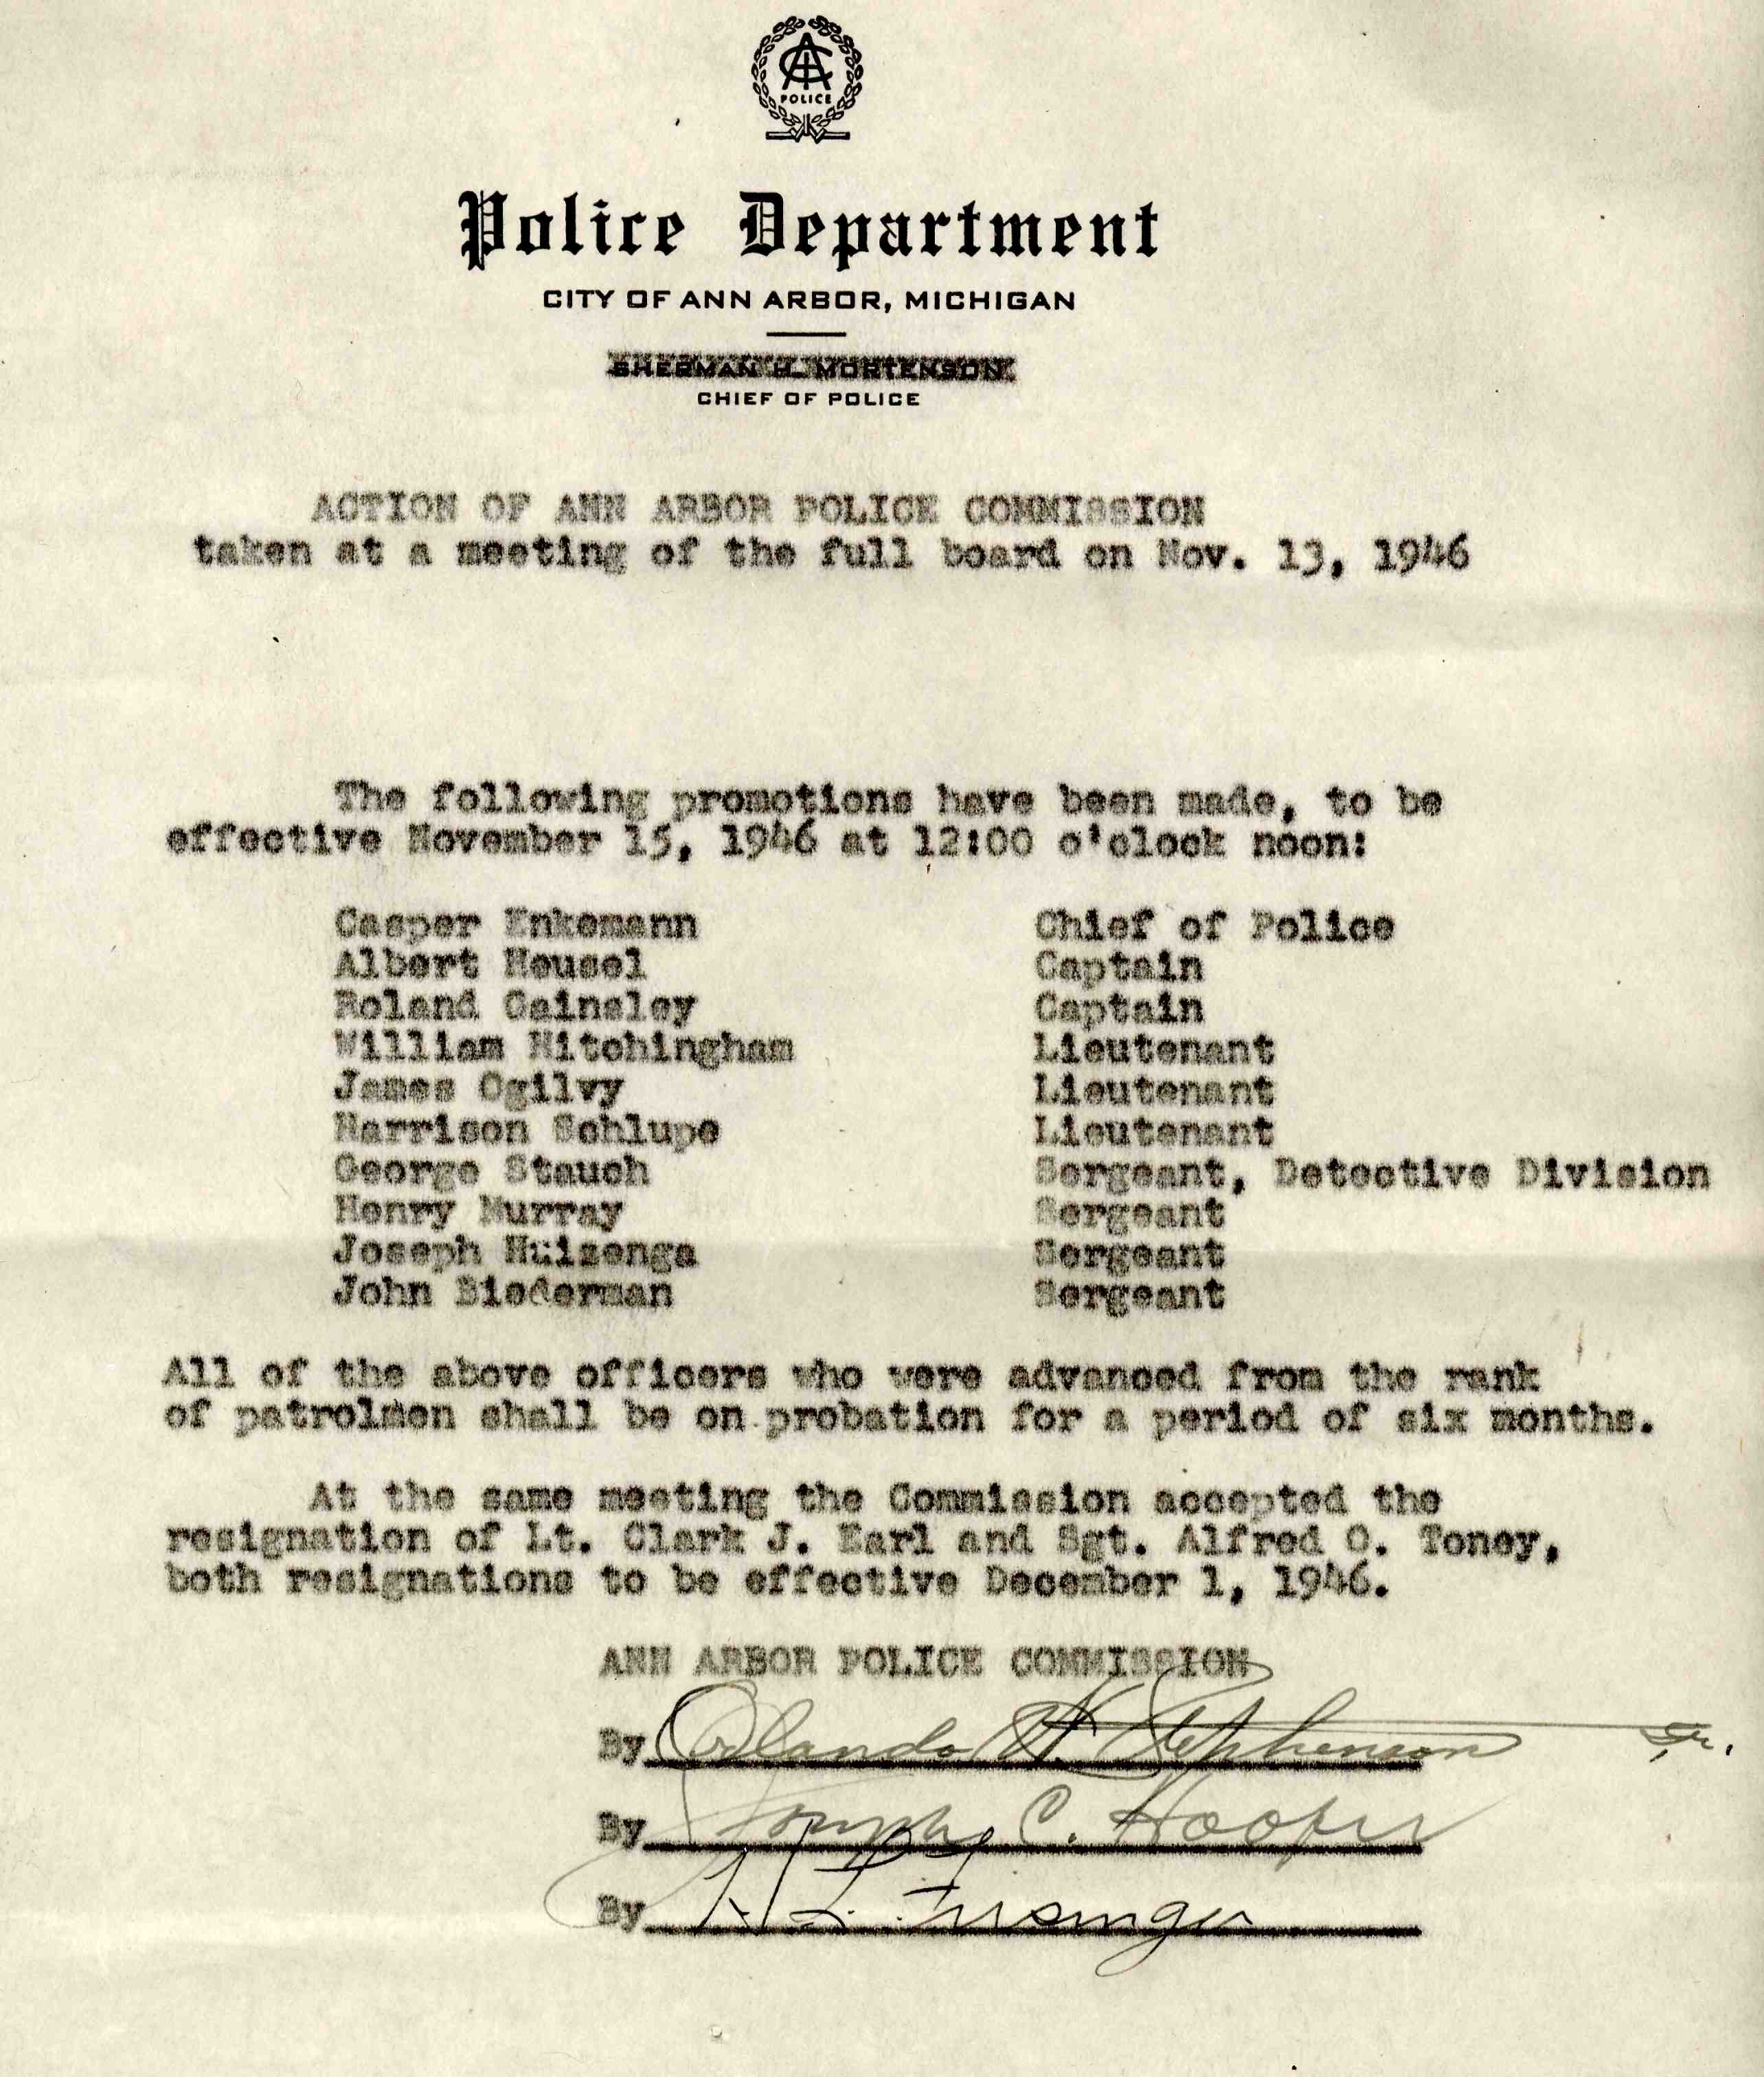 Ann Arbor Police Department Promotions List, November 13, 1946 image